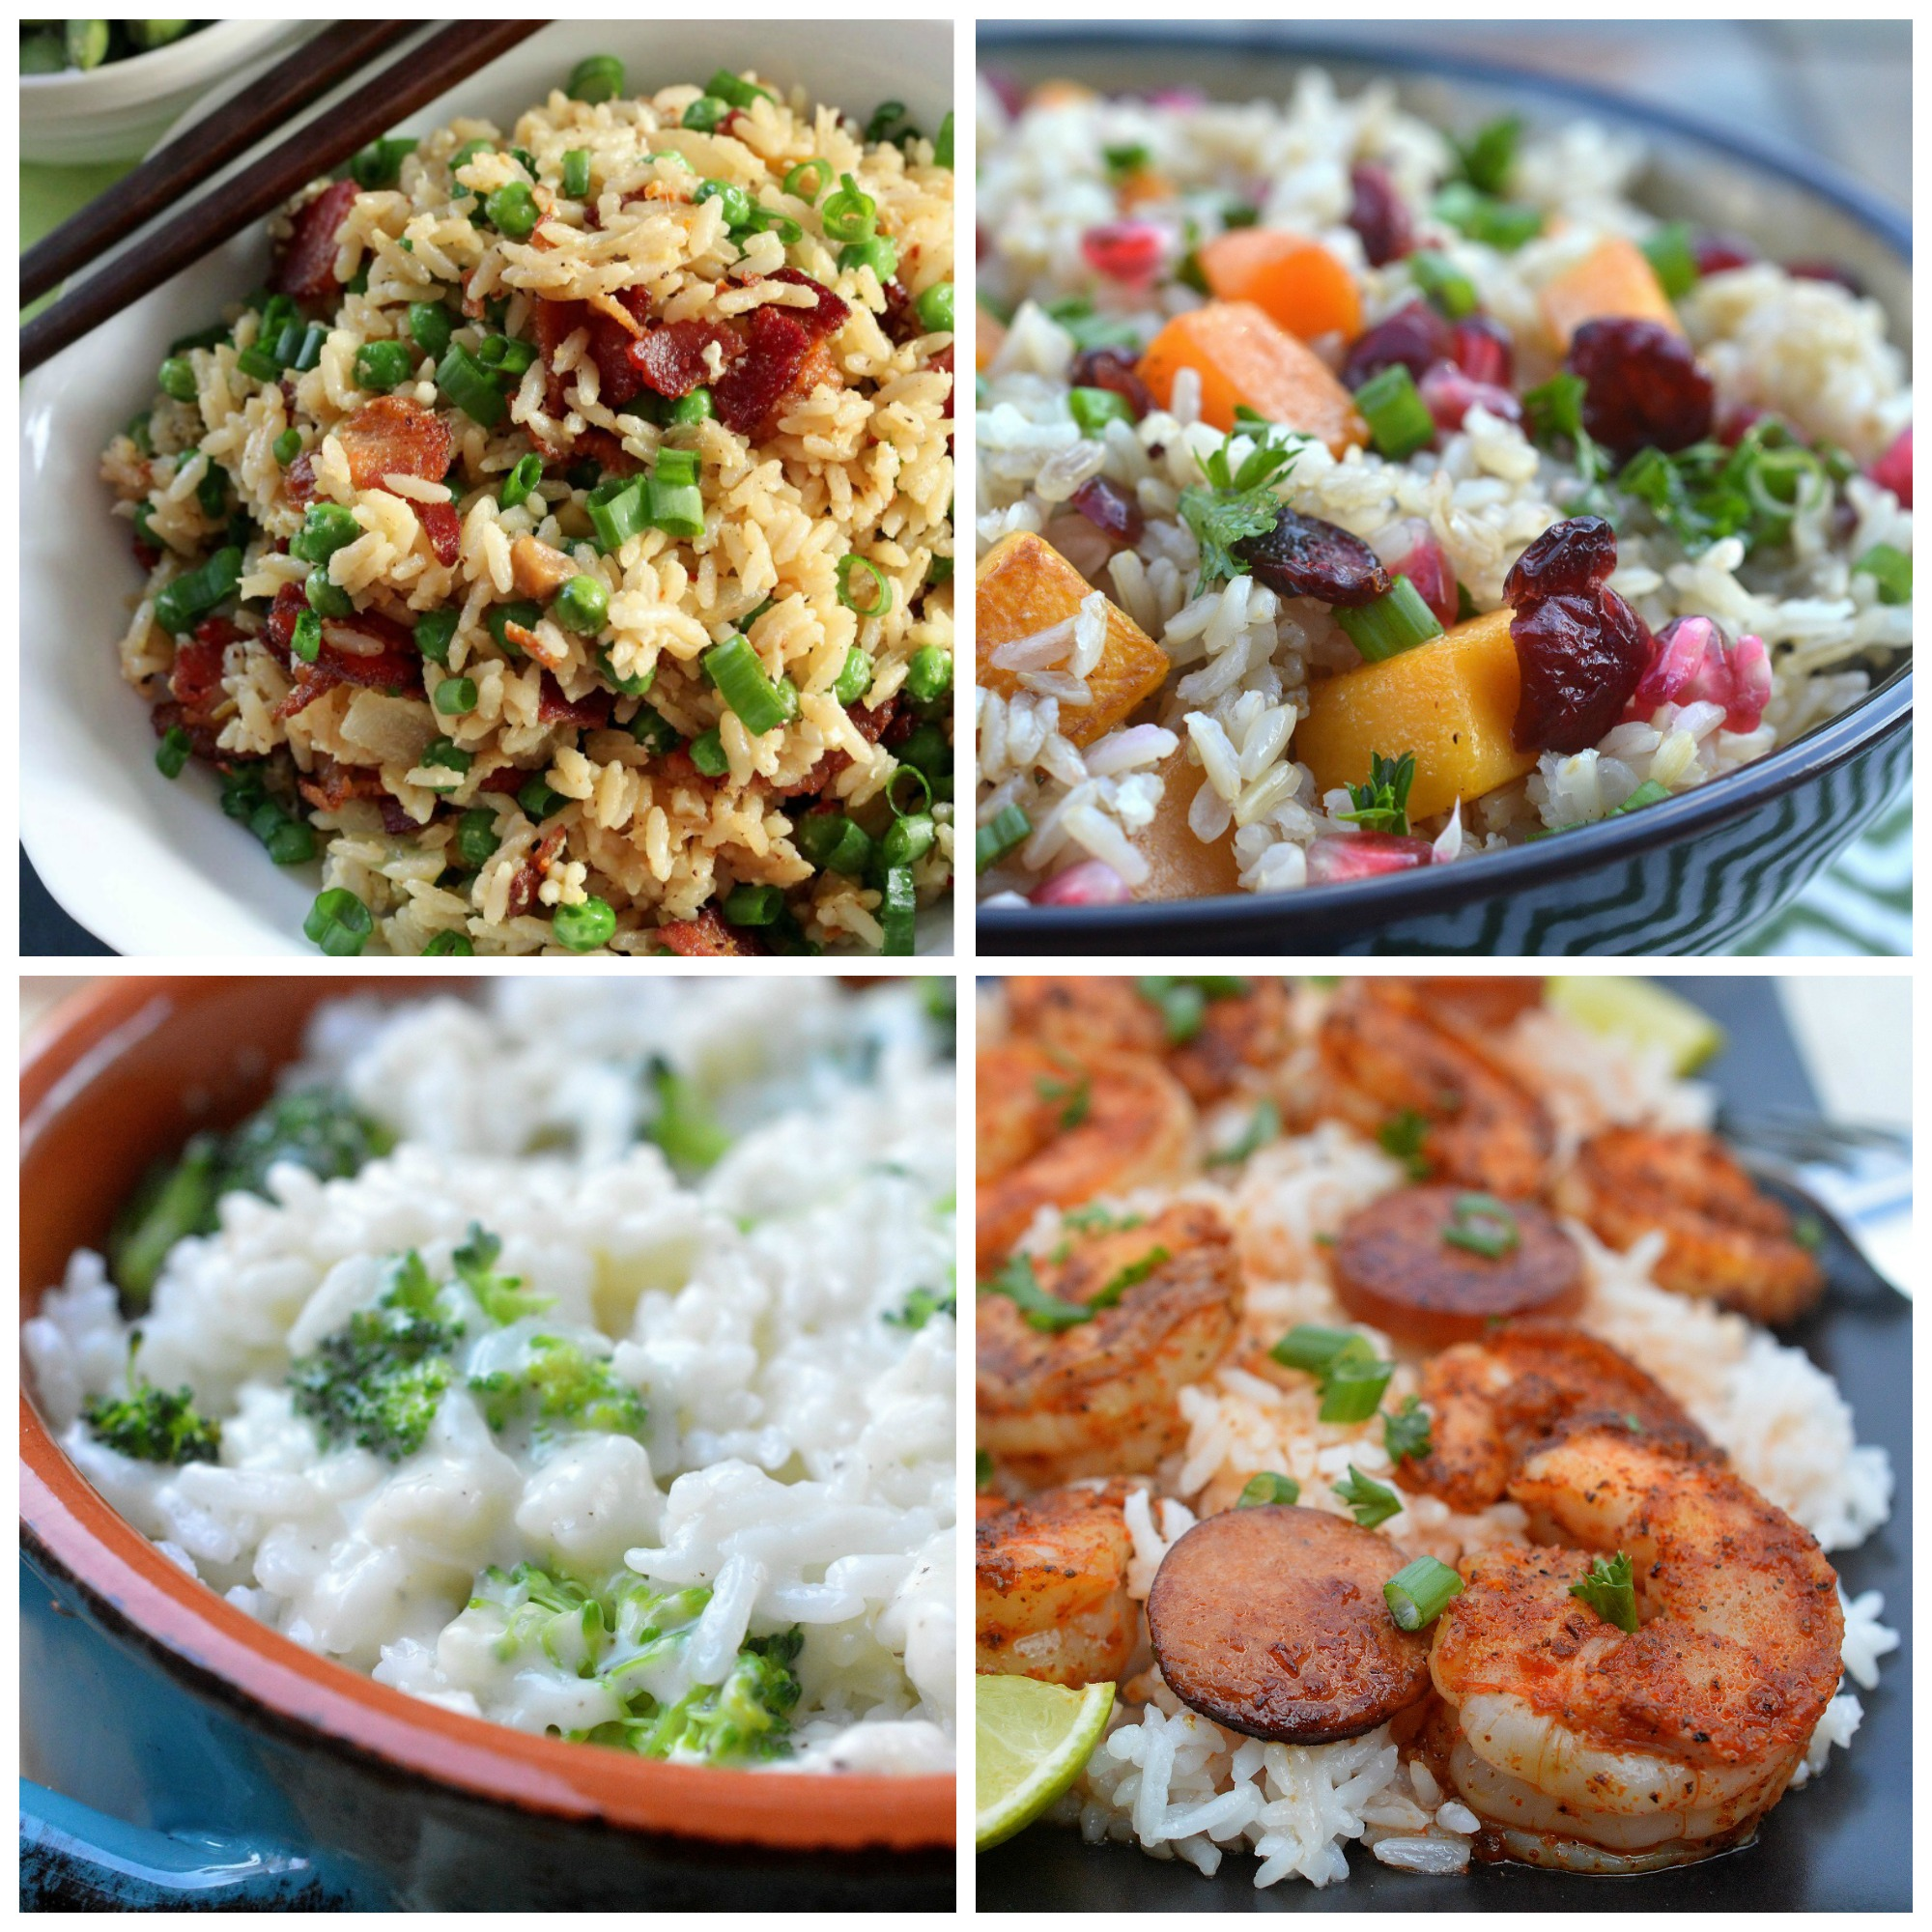 Veetee Dine In Rice Dishes - Bacon Fried Rice, Fall Harvest Bowl, Cheesy Broccli & Rice & One Pot Cajun Shrimp & Sausage over Rice